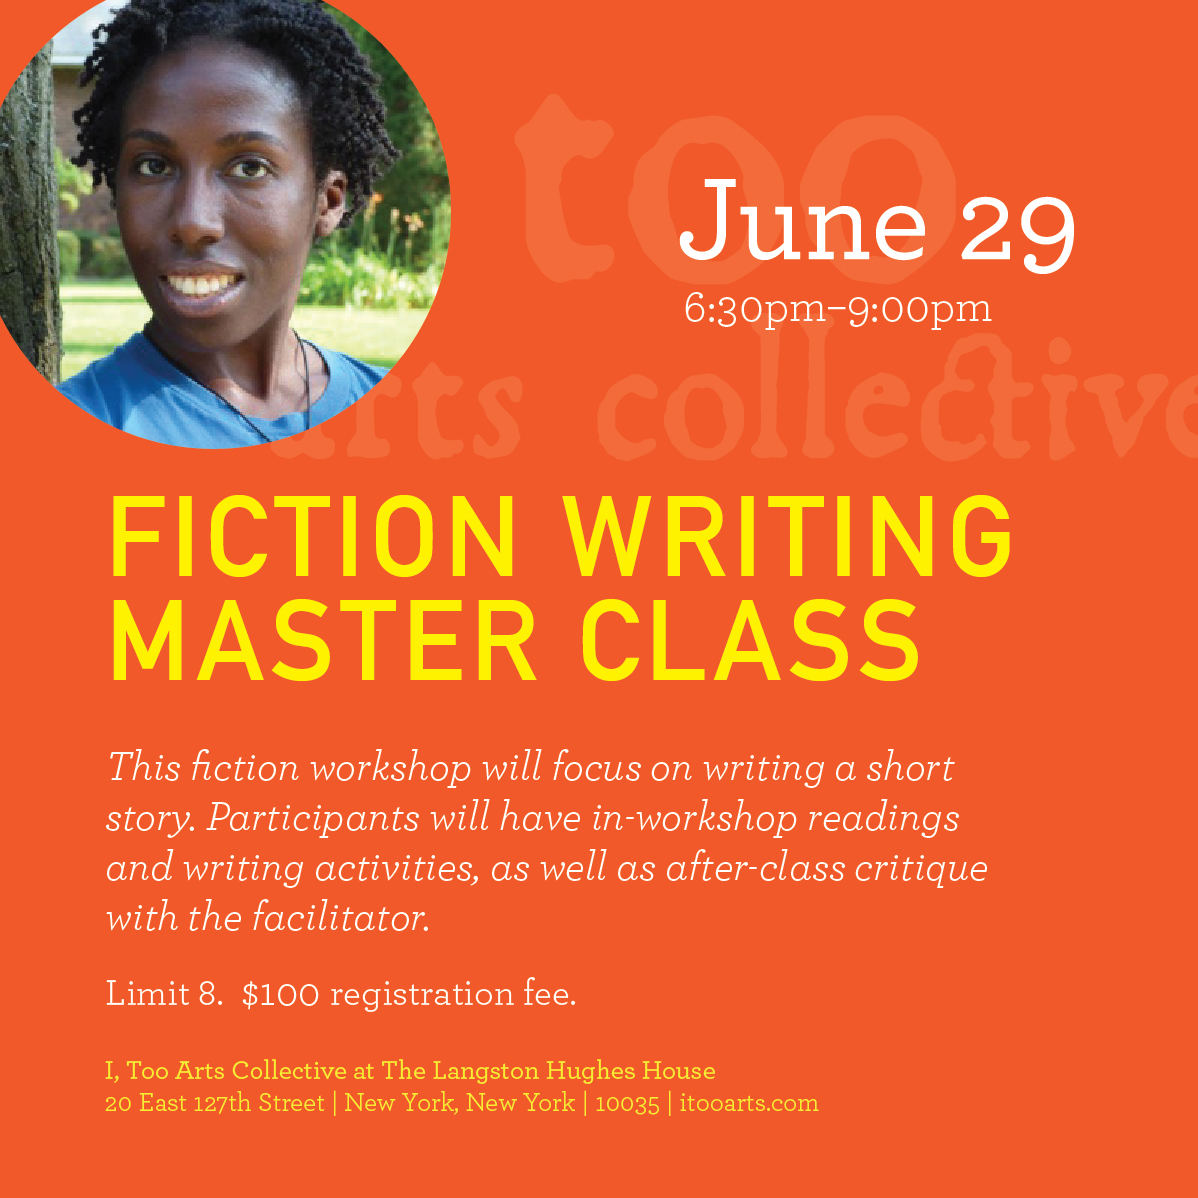 This master class will be taught by Jennifer Baker. Jennifer Baker is a publishing professional with 13 years experience, creator/host of the Minorities in Publishing podcast, panels organizer for the nonprofit We Need Diverse Books, and social media director and writing instructor for Sackett Street Writers' Workshop. She is the editor of the forthcoming short story collection Everyday People: The Color of Life with Atria Books. And she has contributed articles and reviews to Forbes.com, The Billfold, and Bustle as well as other online publications.  Please note there will be no day of registration or drop ins.